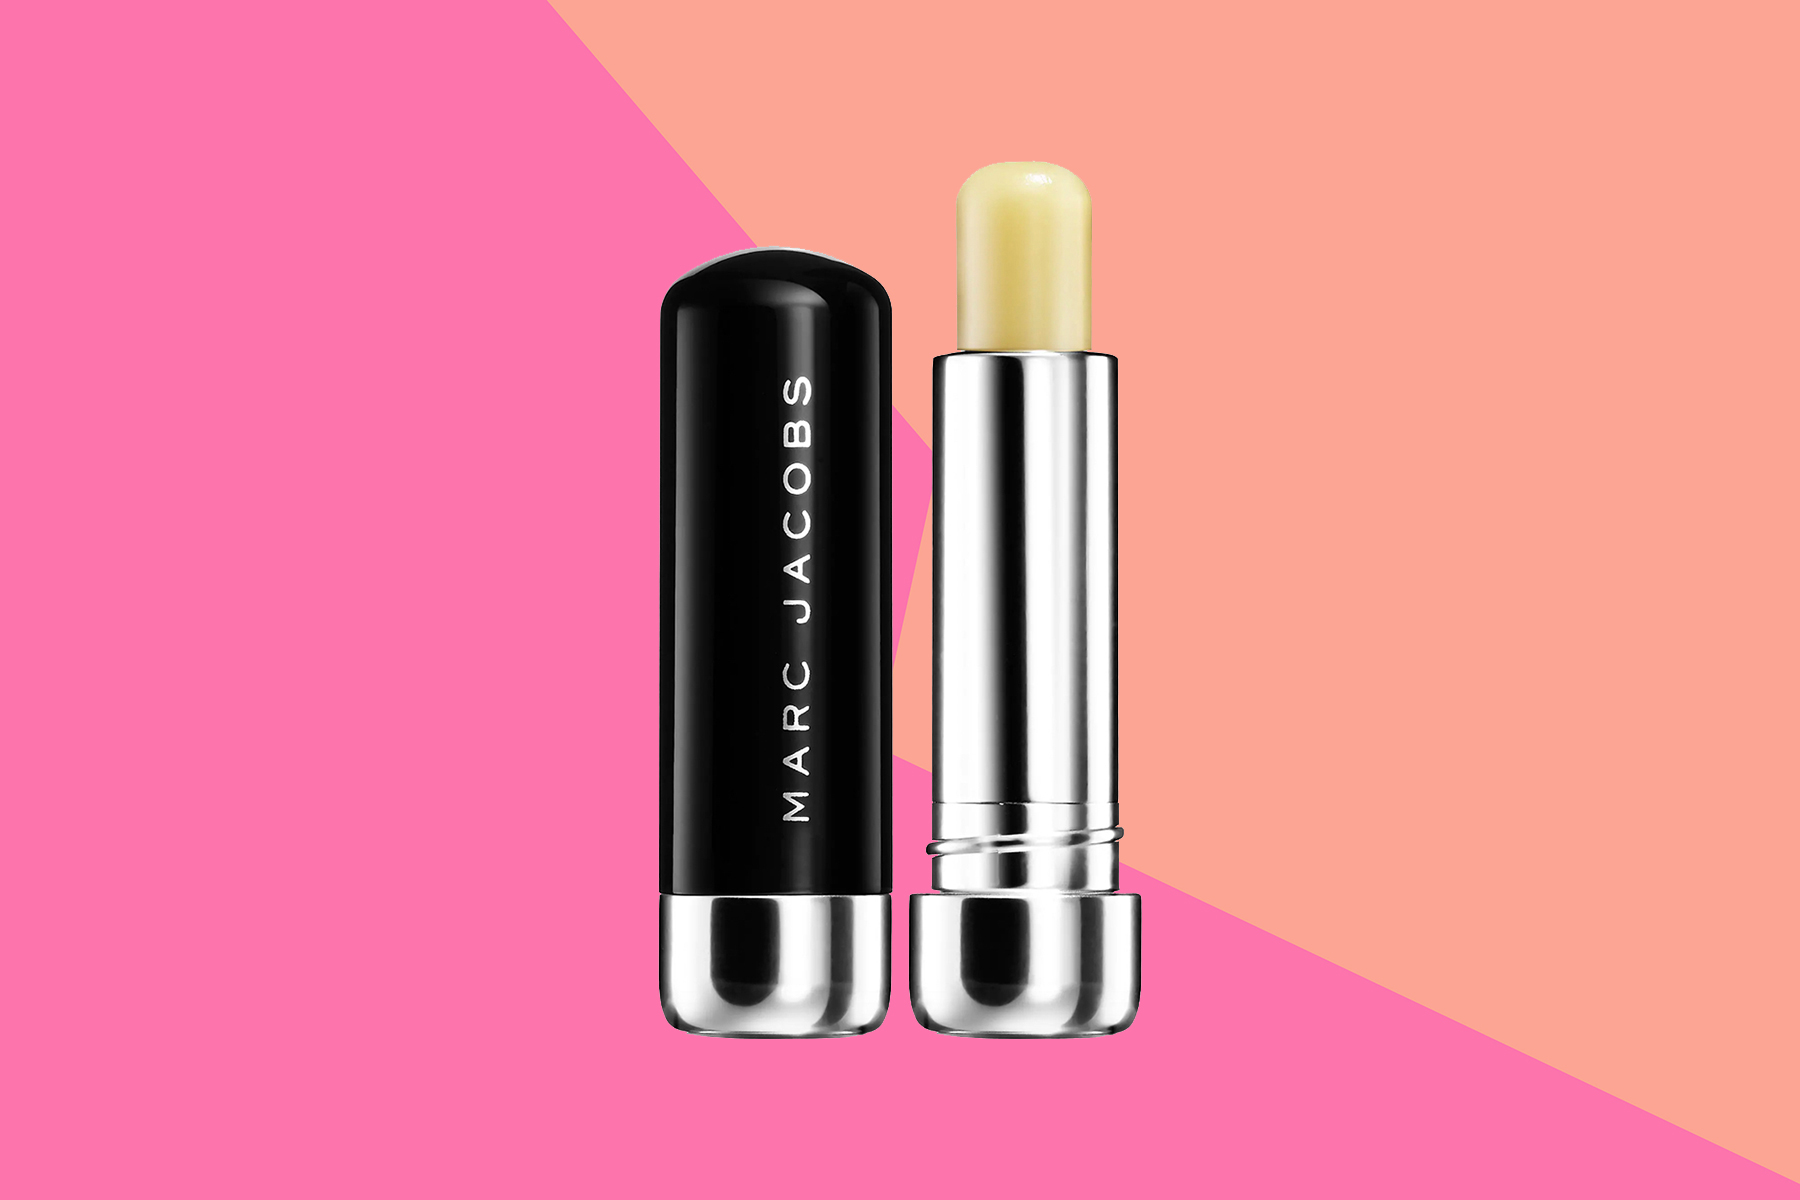 Marc Jacobs Beauty Lip Lock Moisture Balm With SPF 18